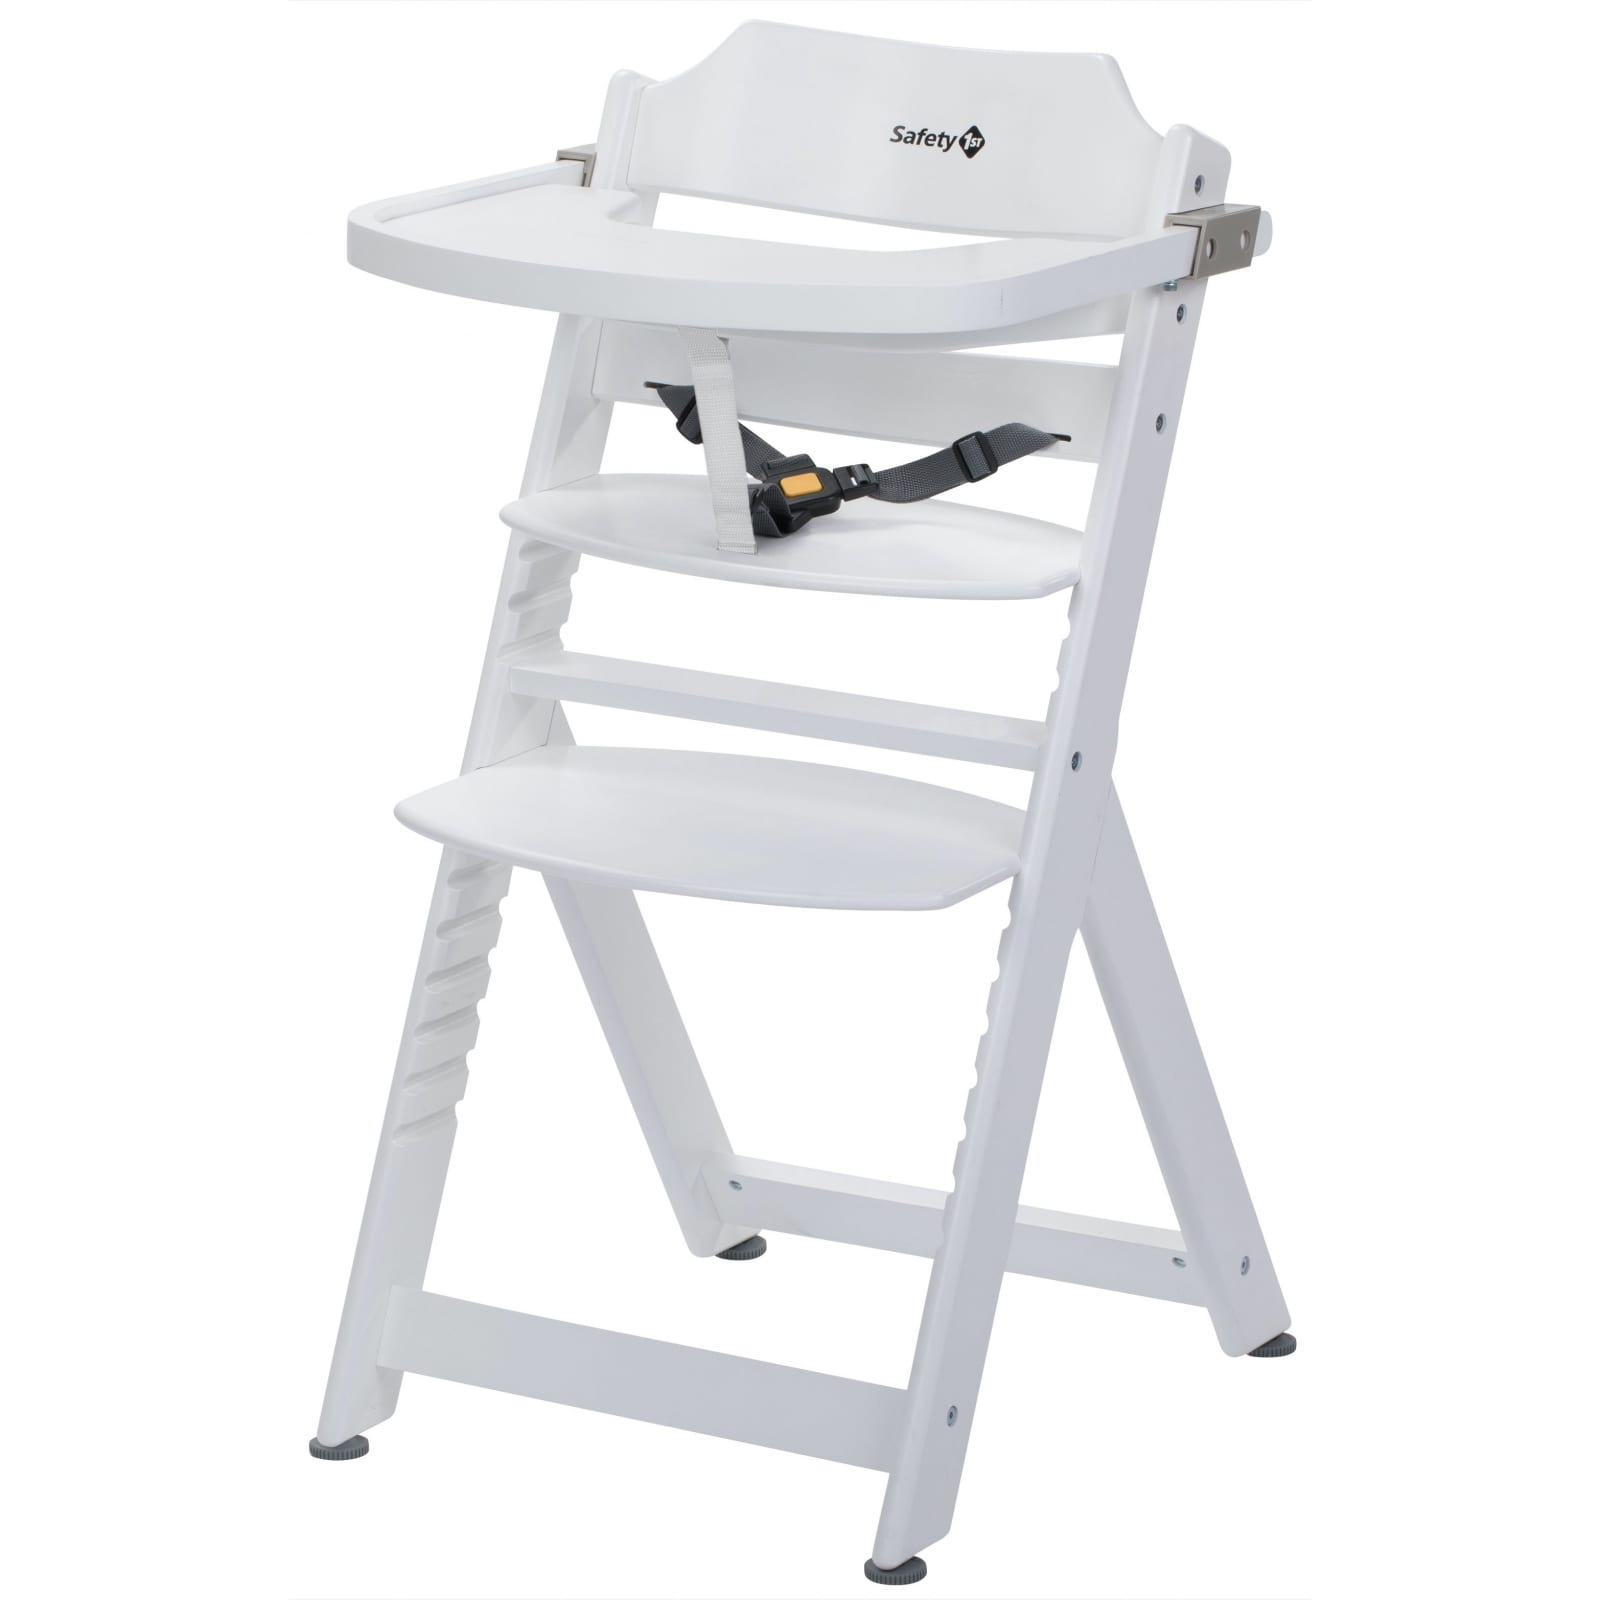 Safety 1st Timba Wooden Highchair – White product image